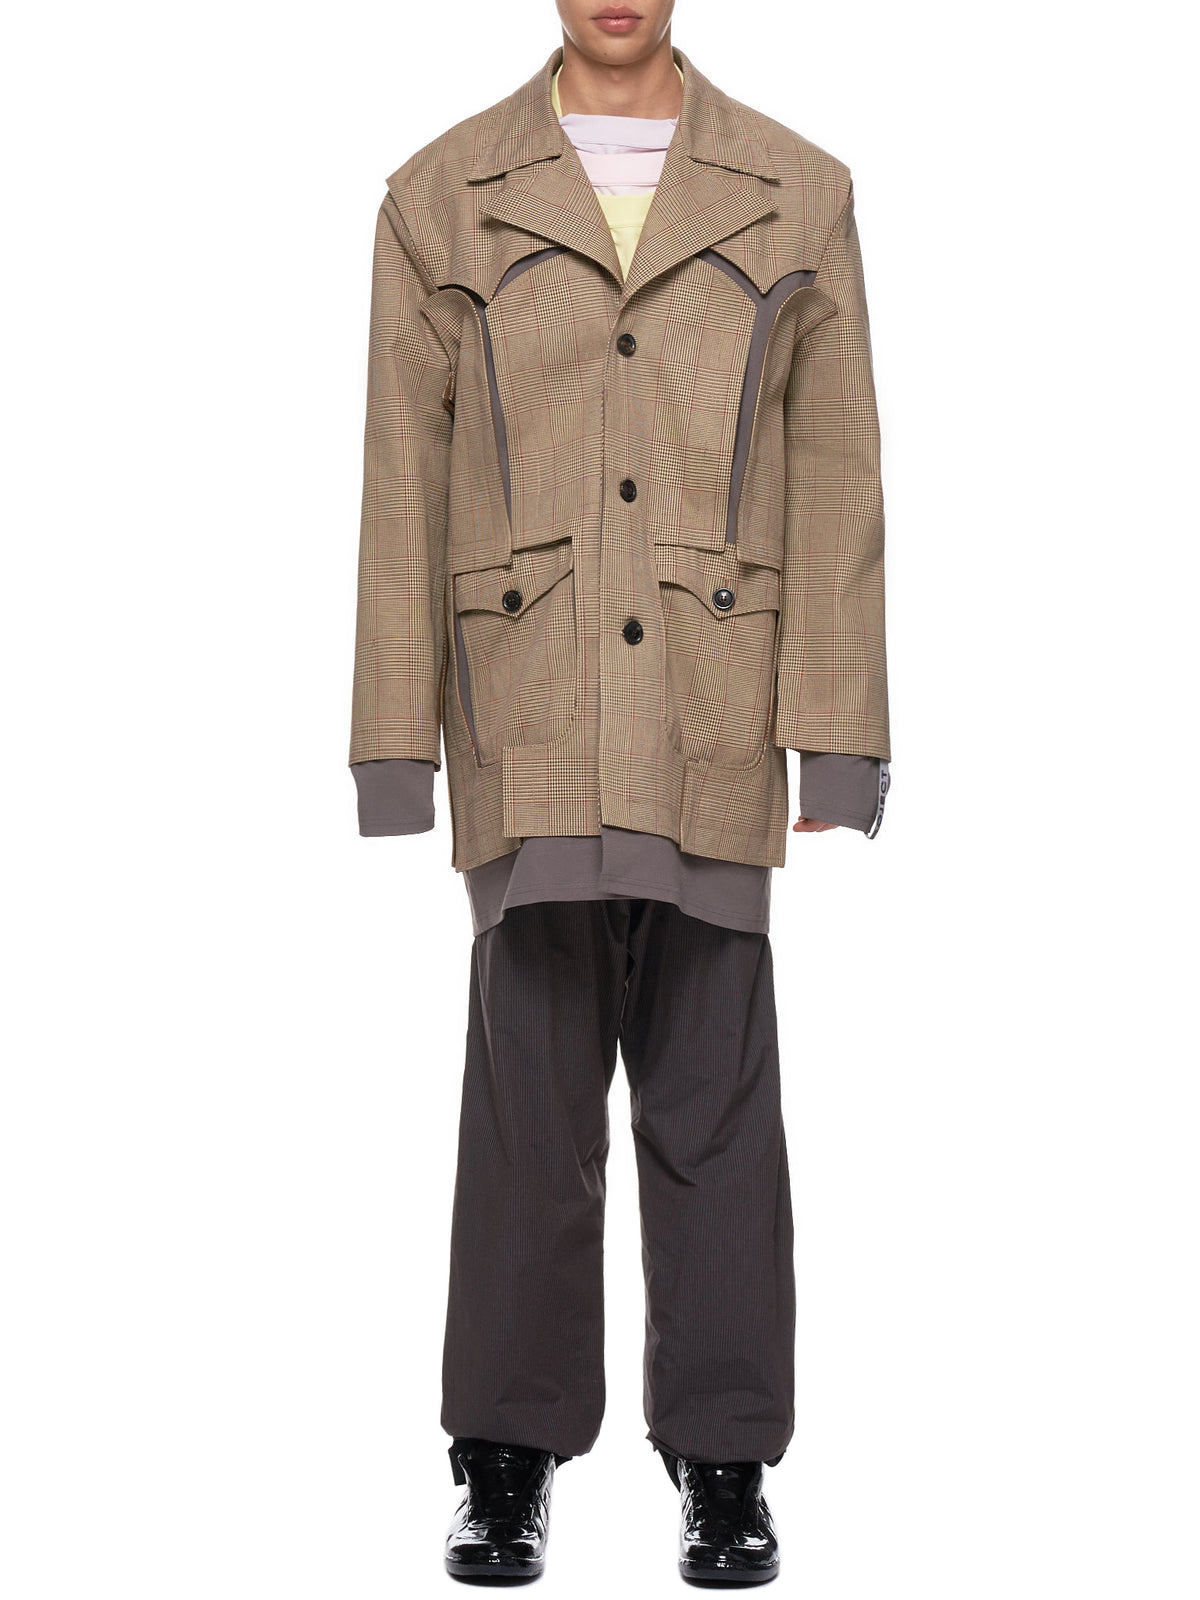 Cut-Out Coat (COAT19-S16-F156-CAMEL)